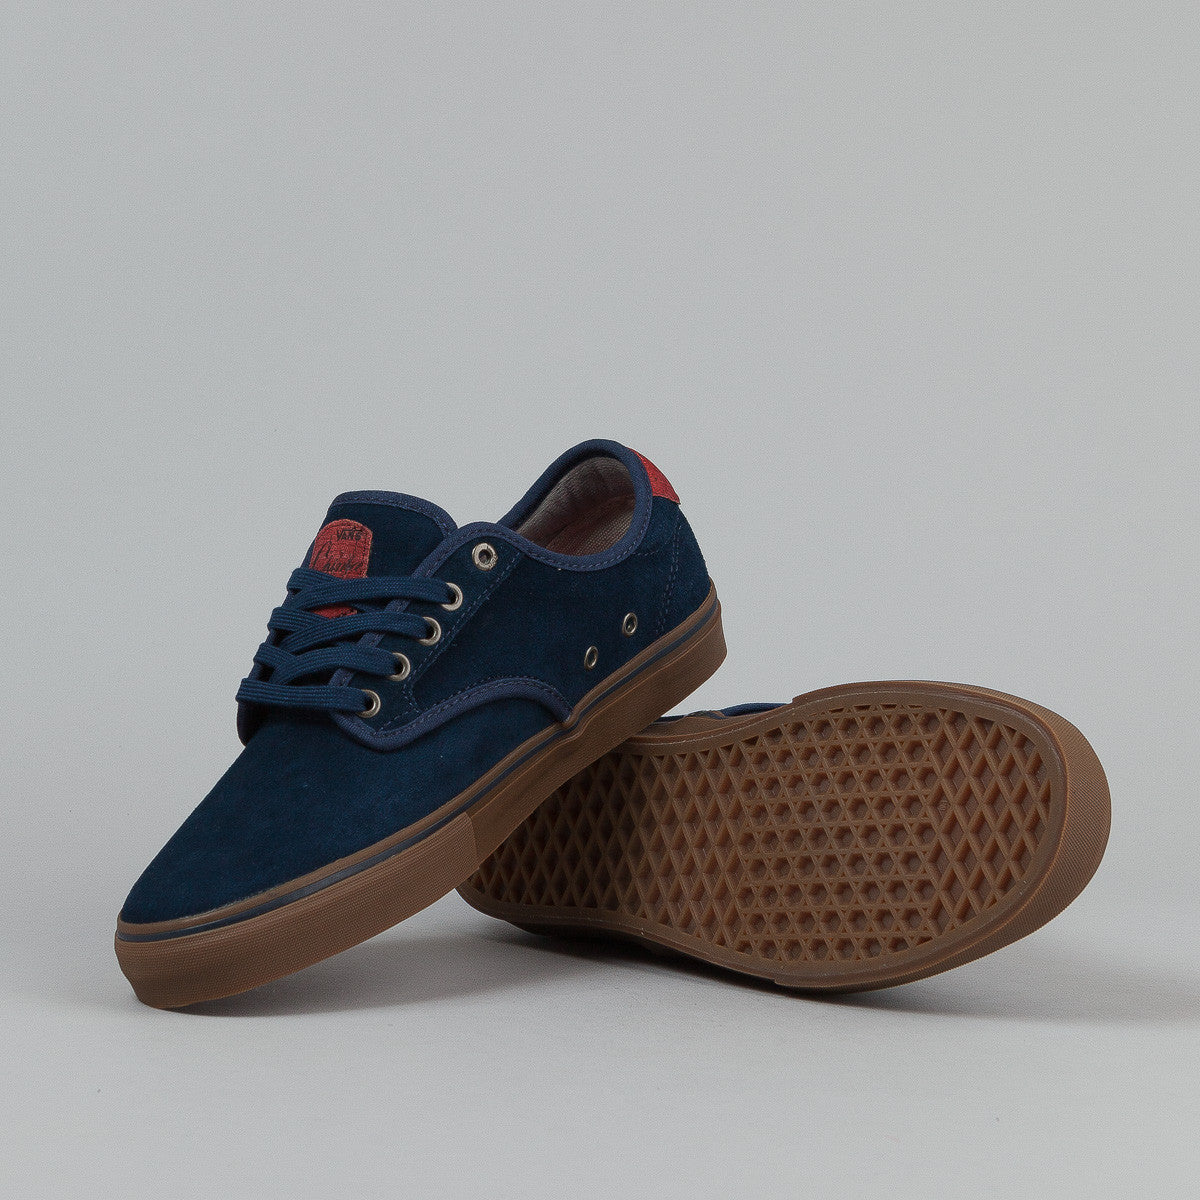 Vans Chima Ferguson Pro Shoes - (Suede) Navy / Gum